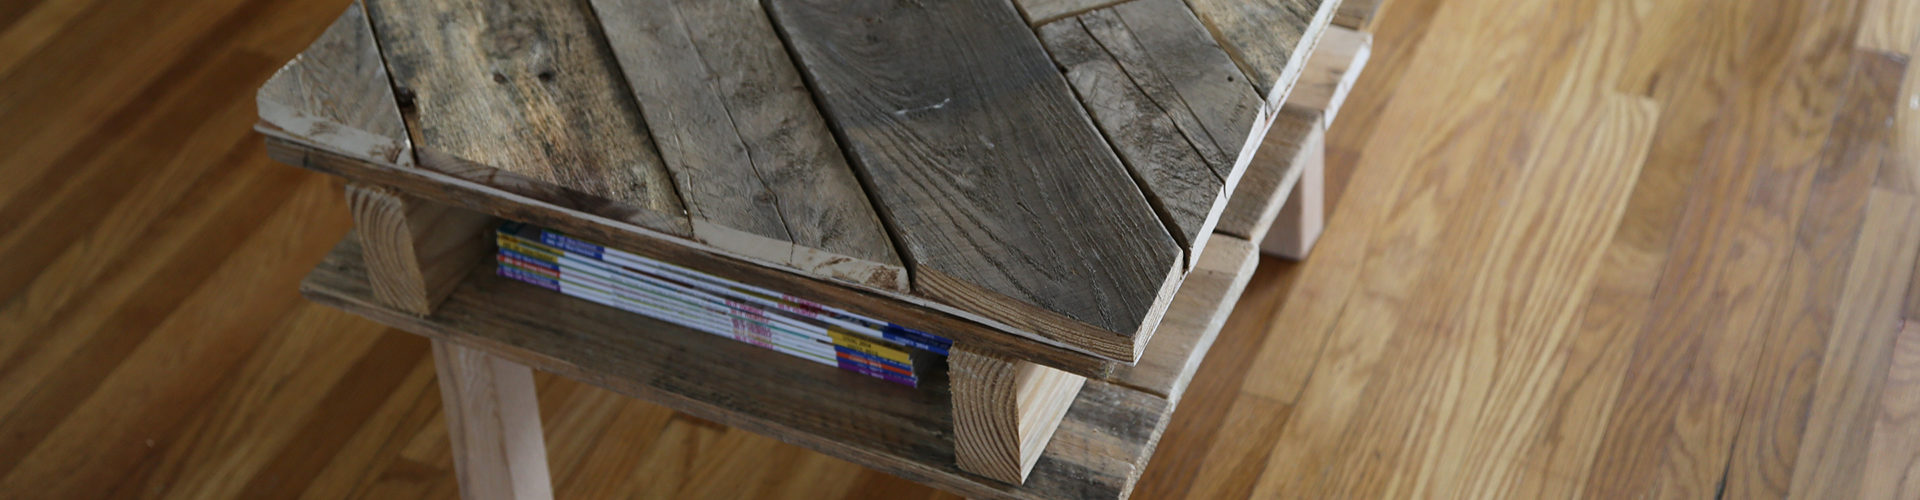 How to make a diy pallet coffee table for under 25 Where can i buy reclaimed wood near me